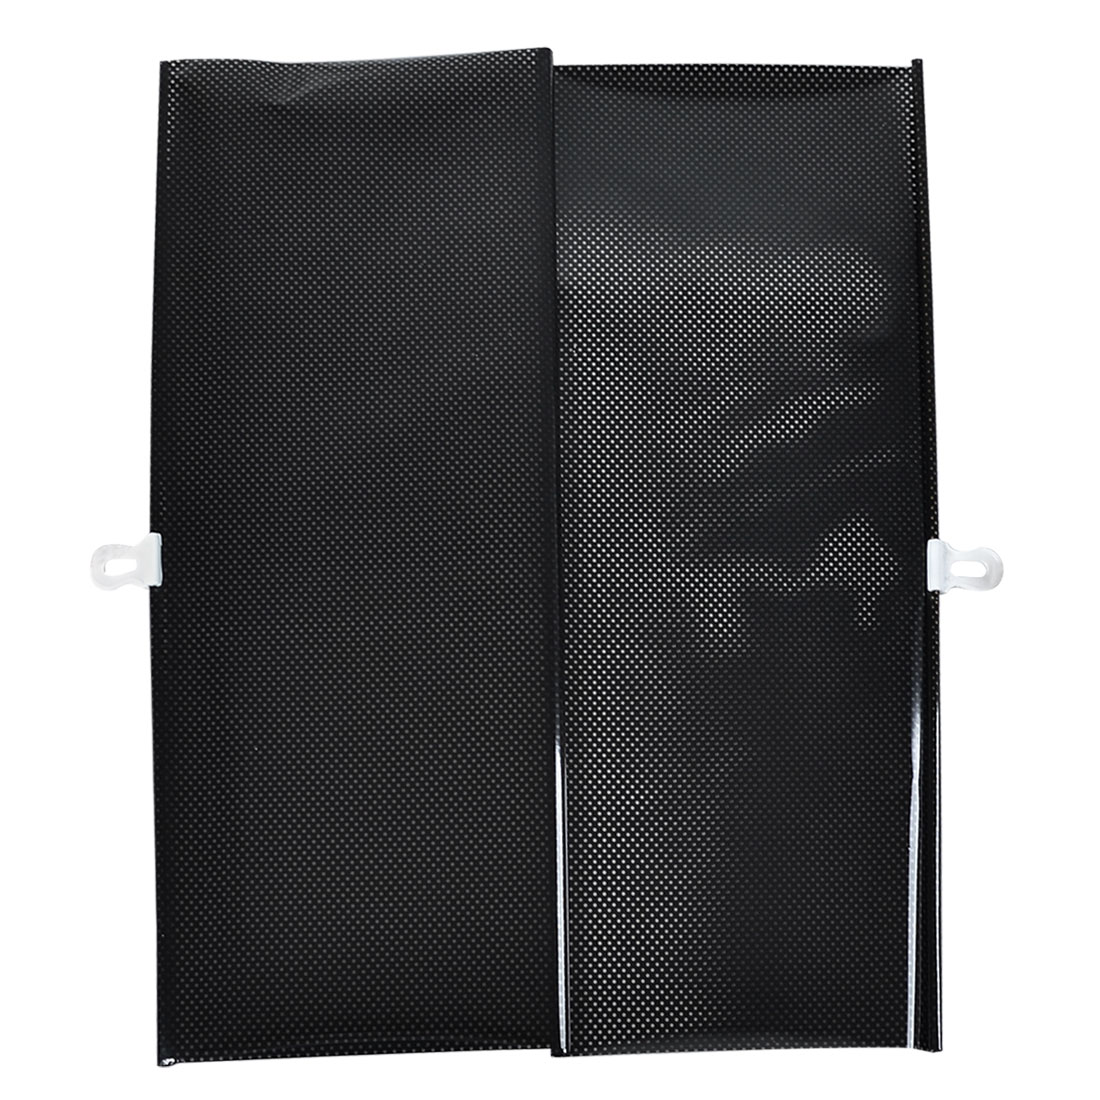 Auto Car Front Rear Window Folding Retractable Sun Shade 127cm x 60cm